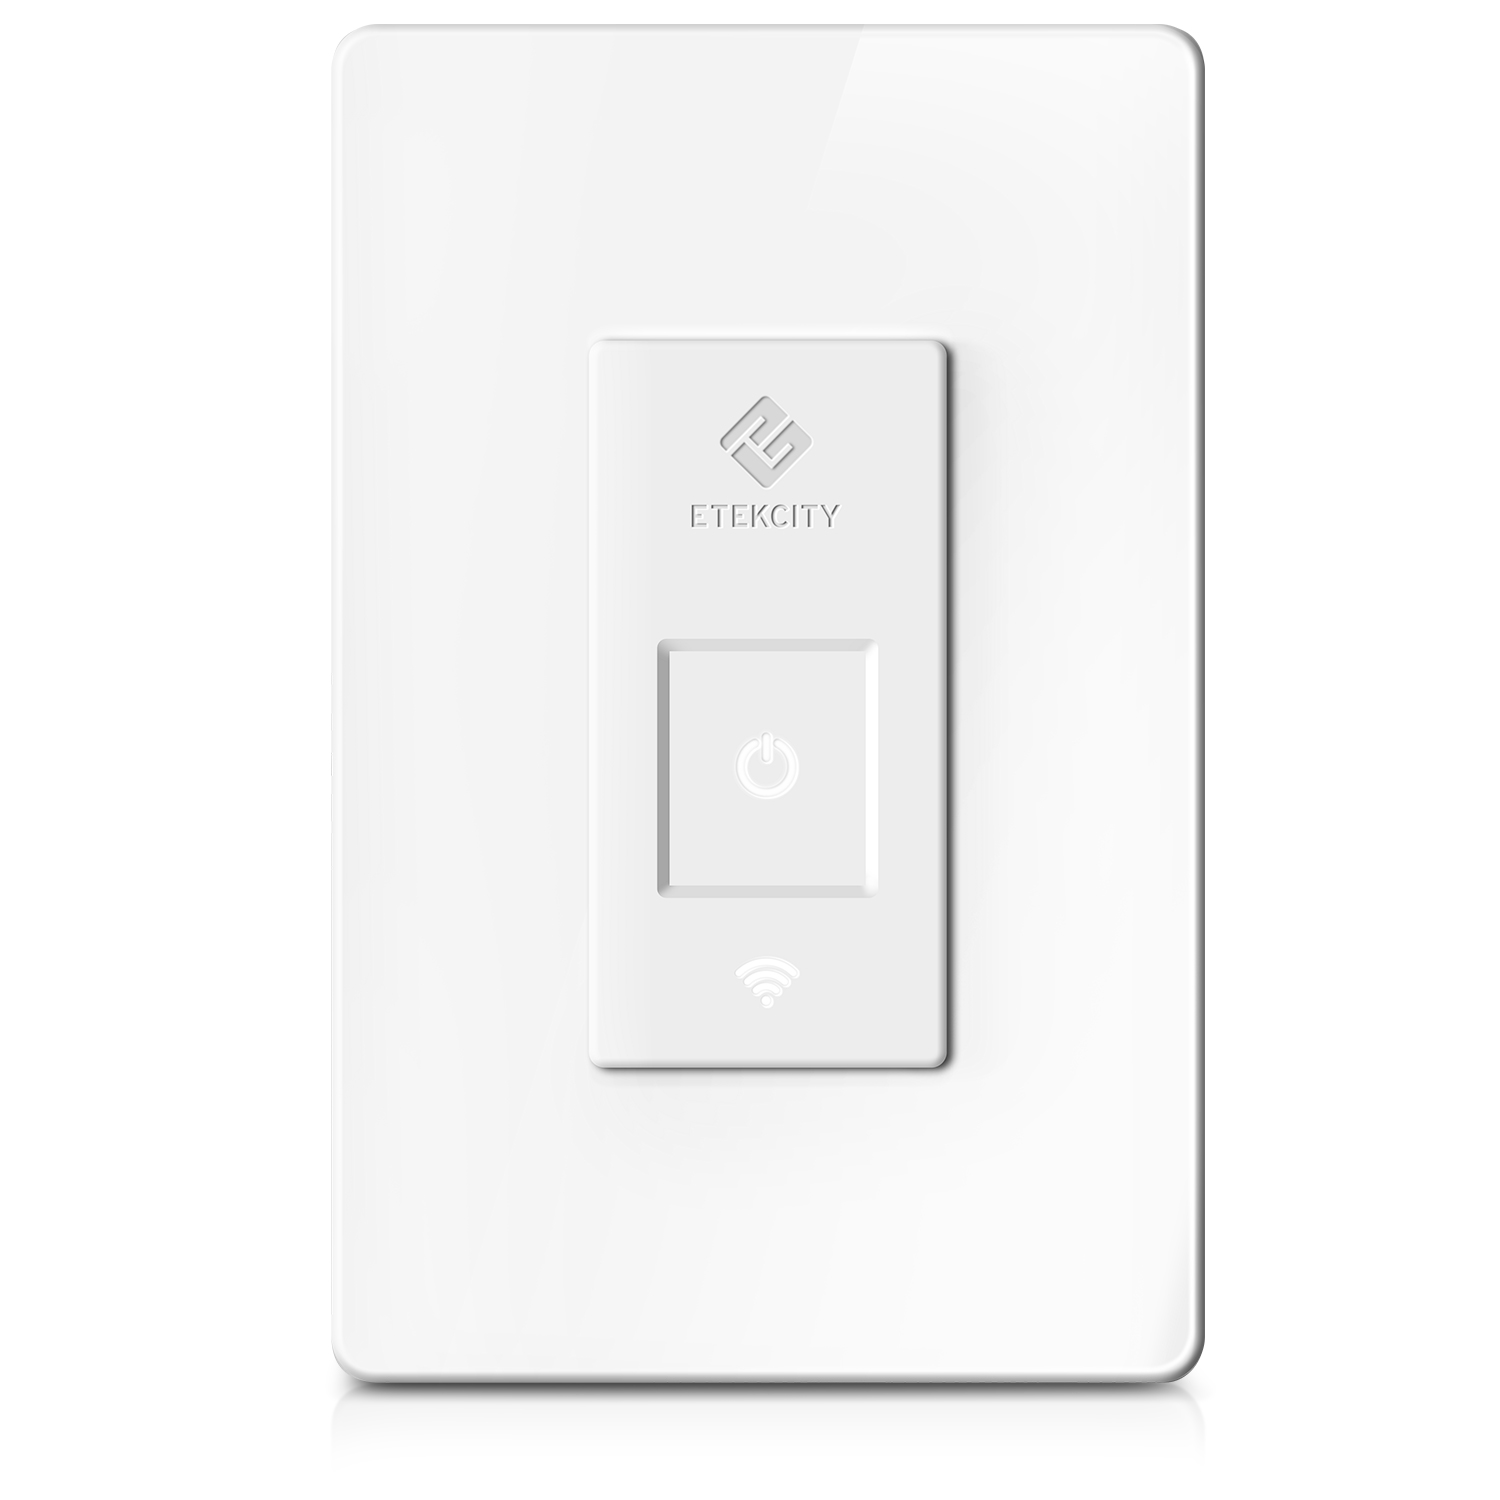 Etekcity Smart WiFi Light Switch (ESWL01)